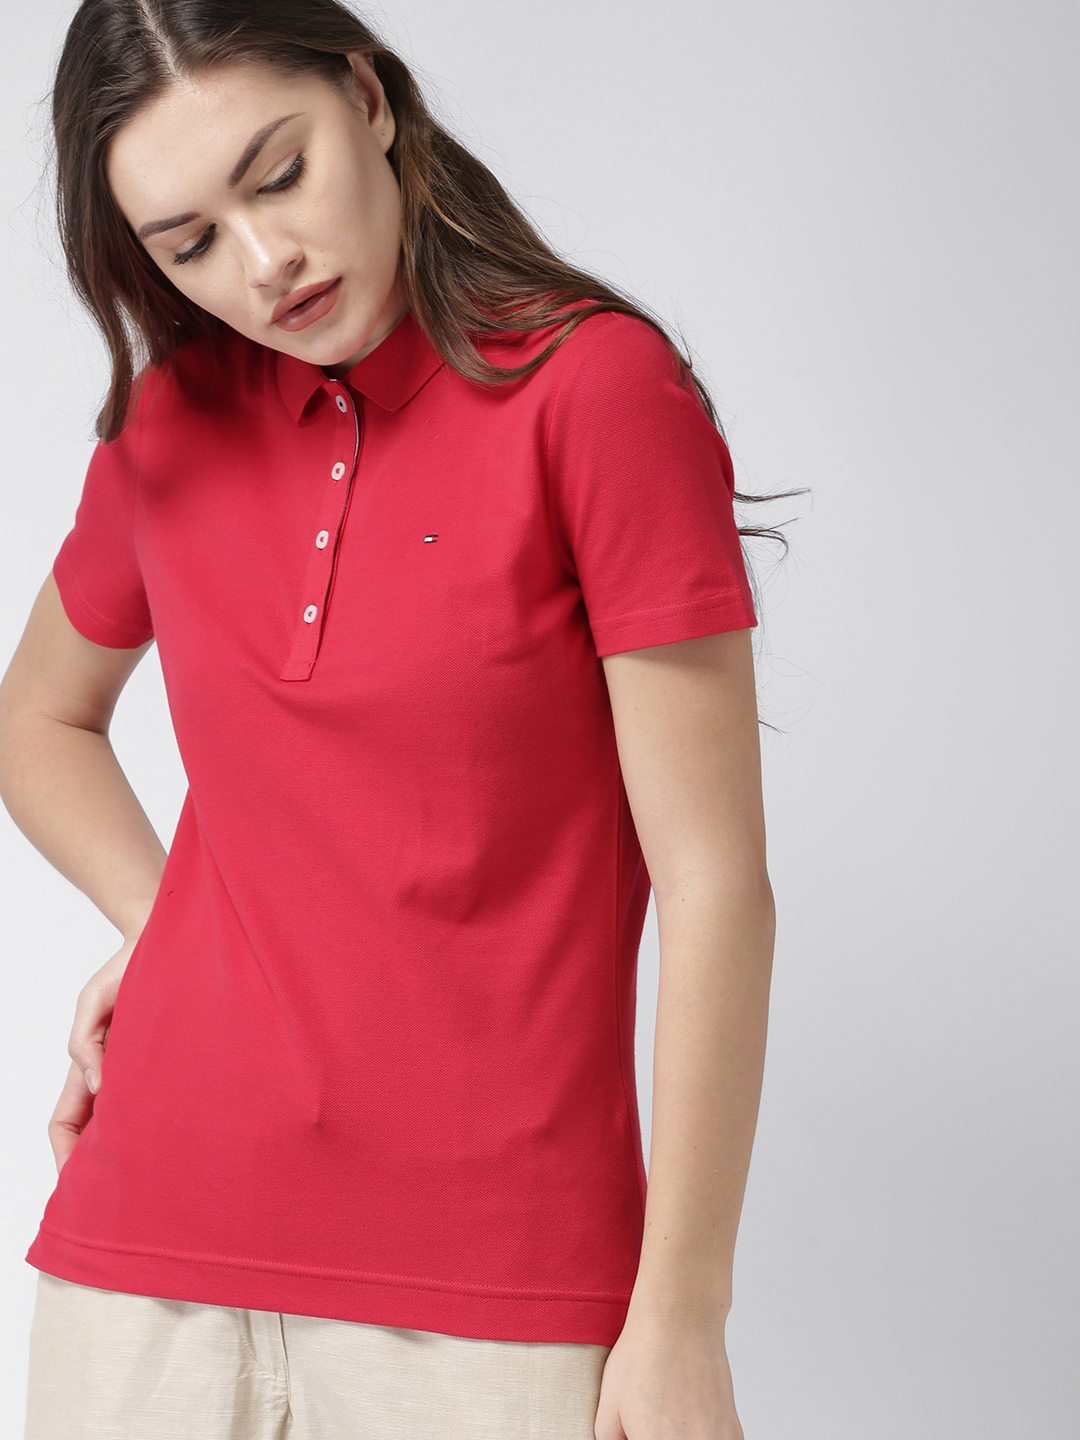 Buy Tommy Hilfiger Women Red Solid Polo Collar T Shirt - Tshirts for ... 78d32cf8ec